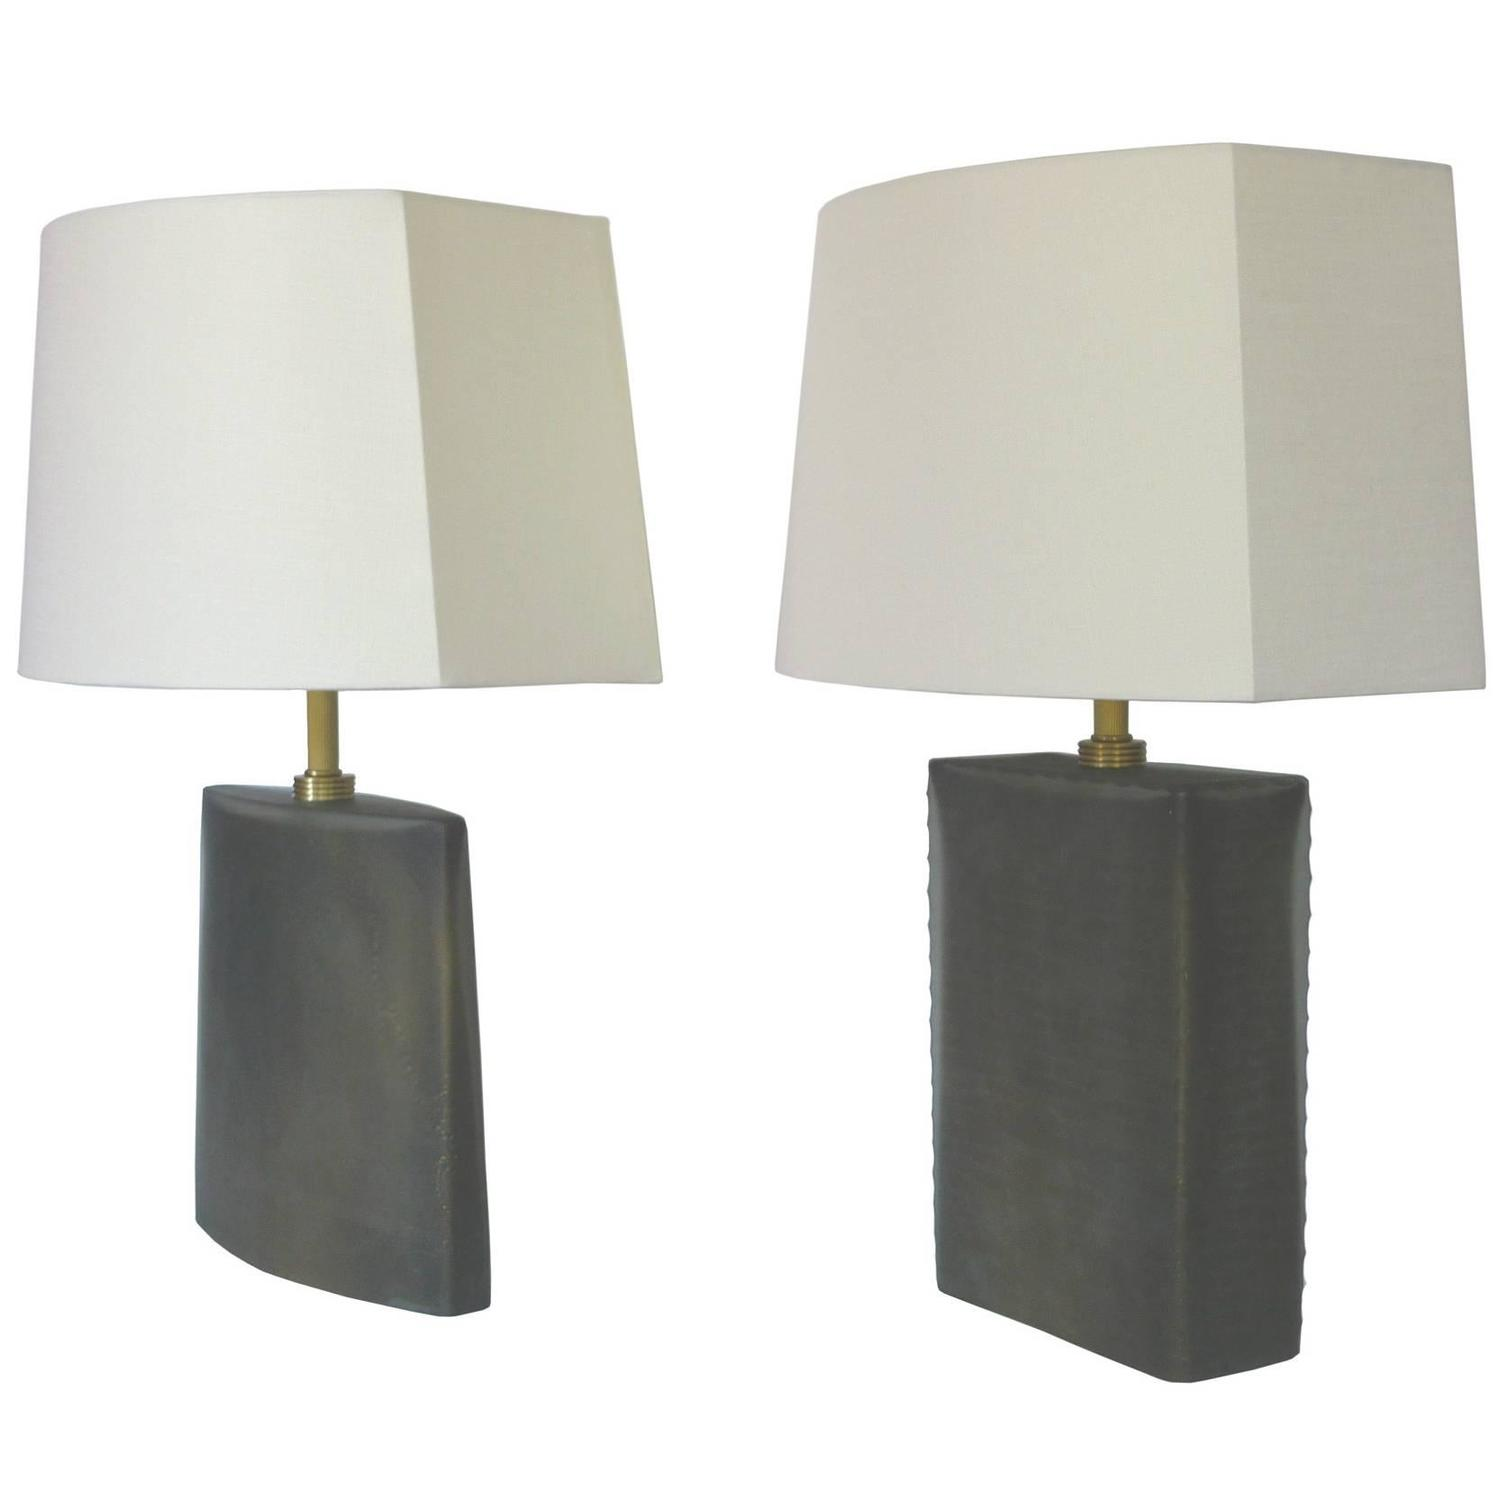 donghia frosted glass table lamps a matching set for sale. Black Bedroom Furniture Sets. Home Design Ideas